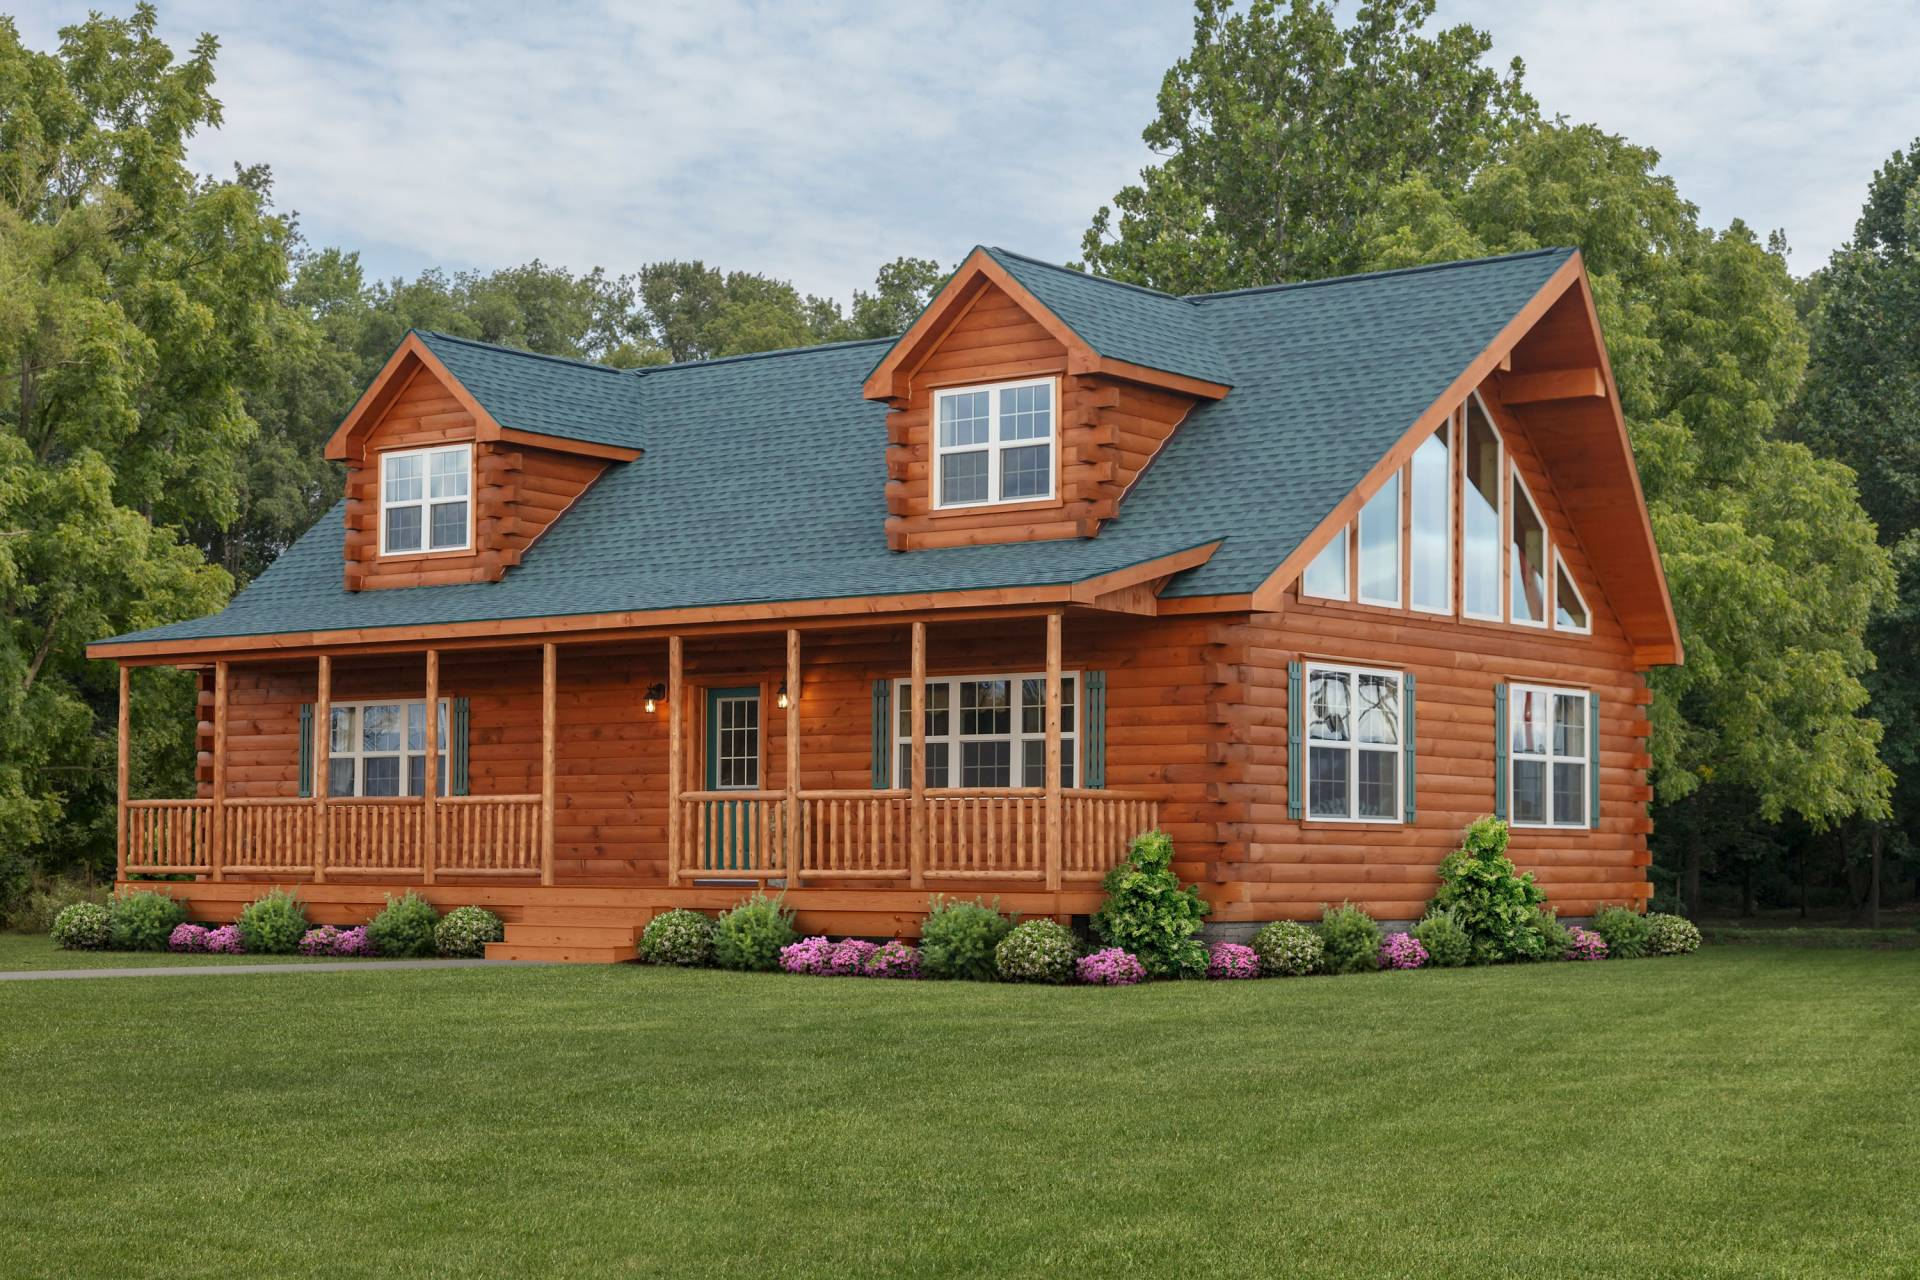 Mountaineer deluxe log home cozy cabins manufactured in pa for Log cabins homes